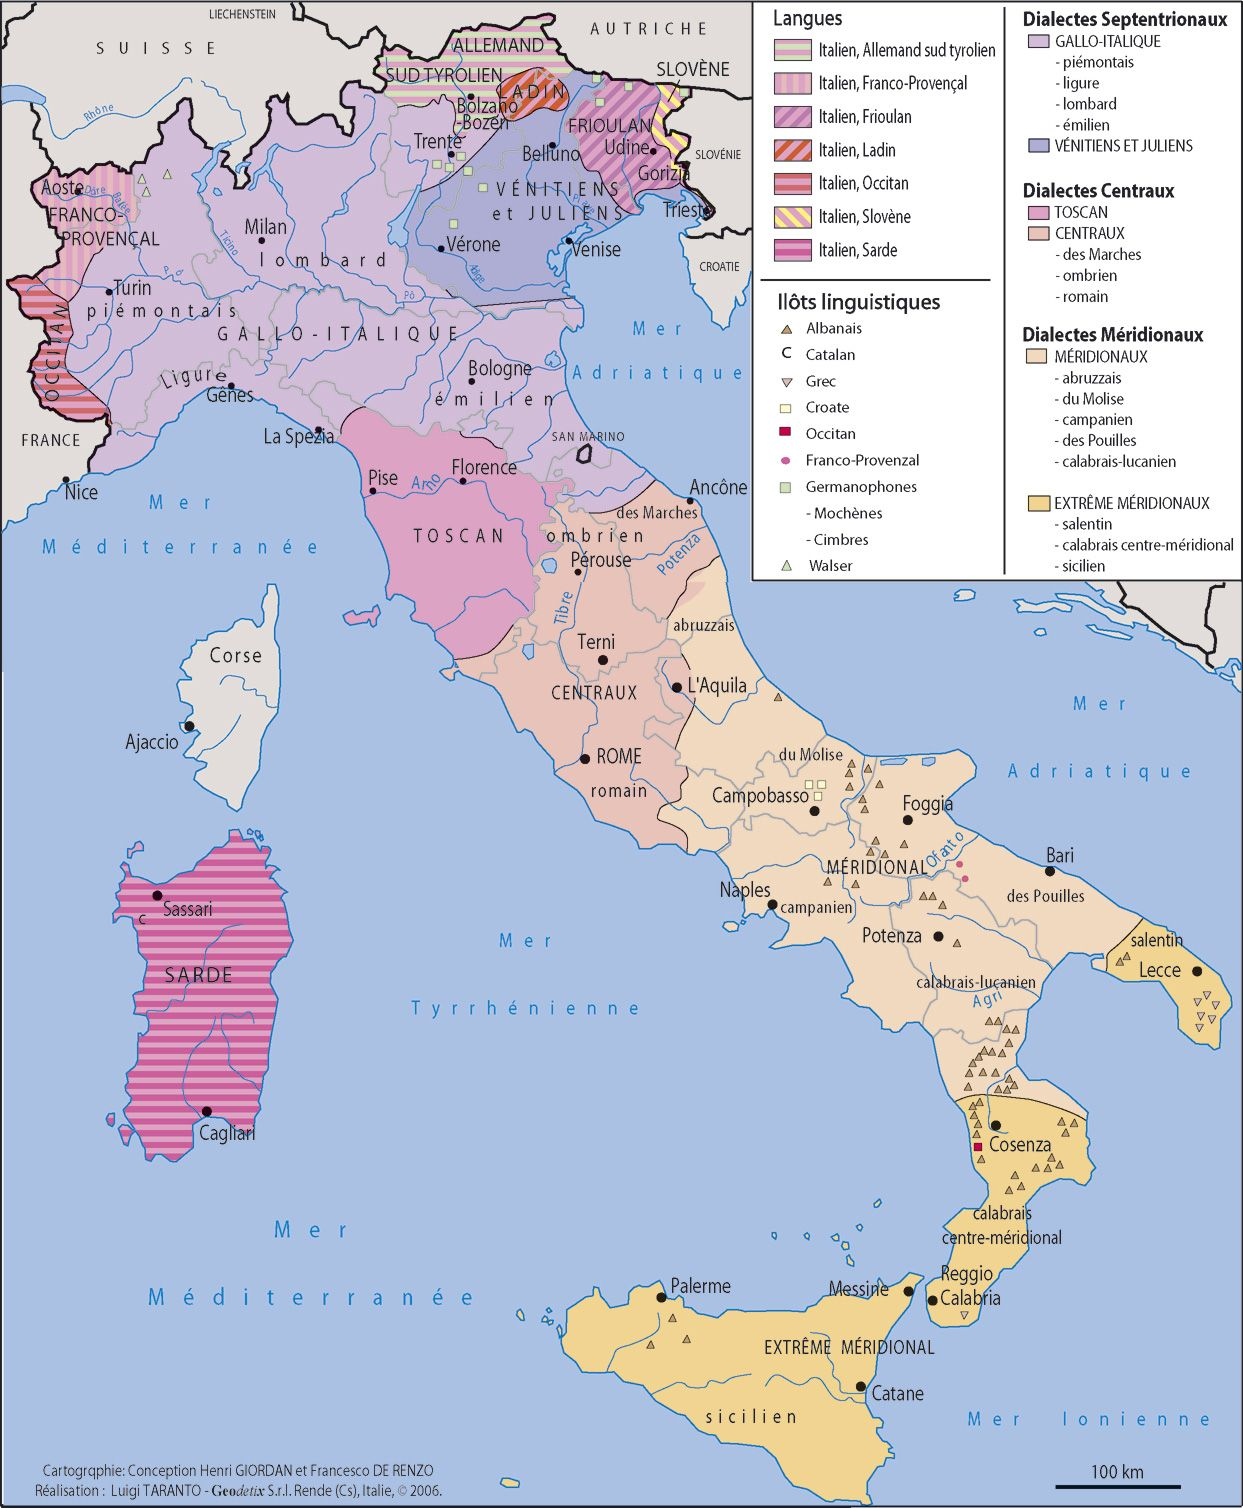 Language And Dialects In Italy By Region Carte Italie Italie